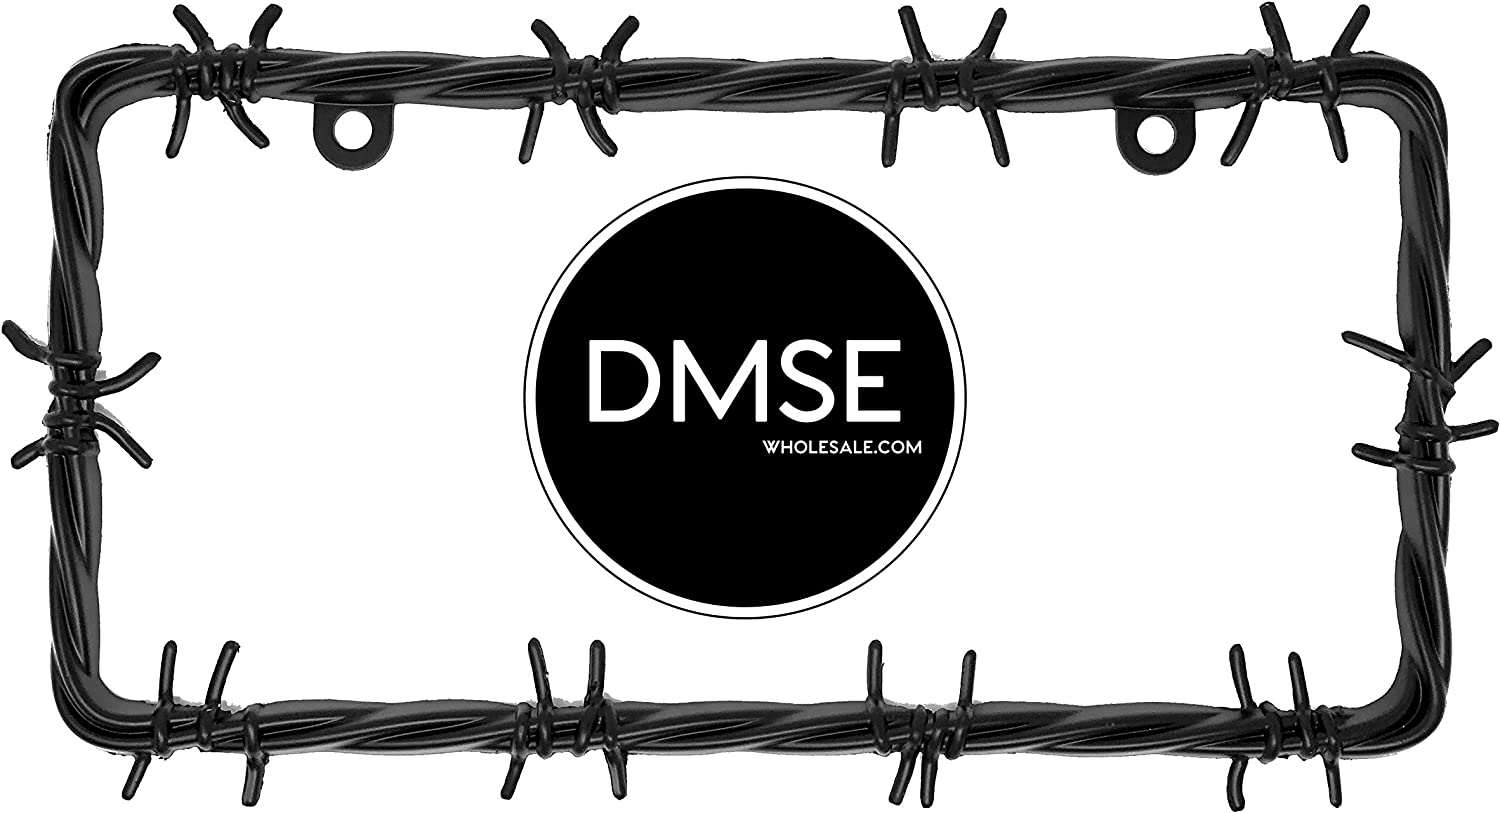 Black DMSE Barb Barbed Wire Barbwire Wired Universal Metal License Plate Frame Cool Decorative Design For Any Vehicle